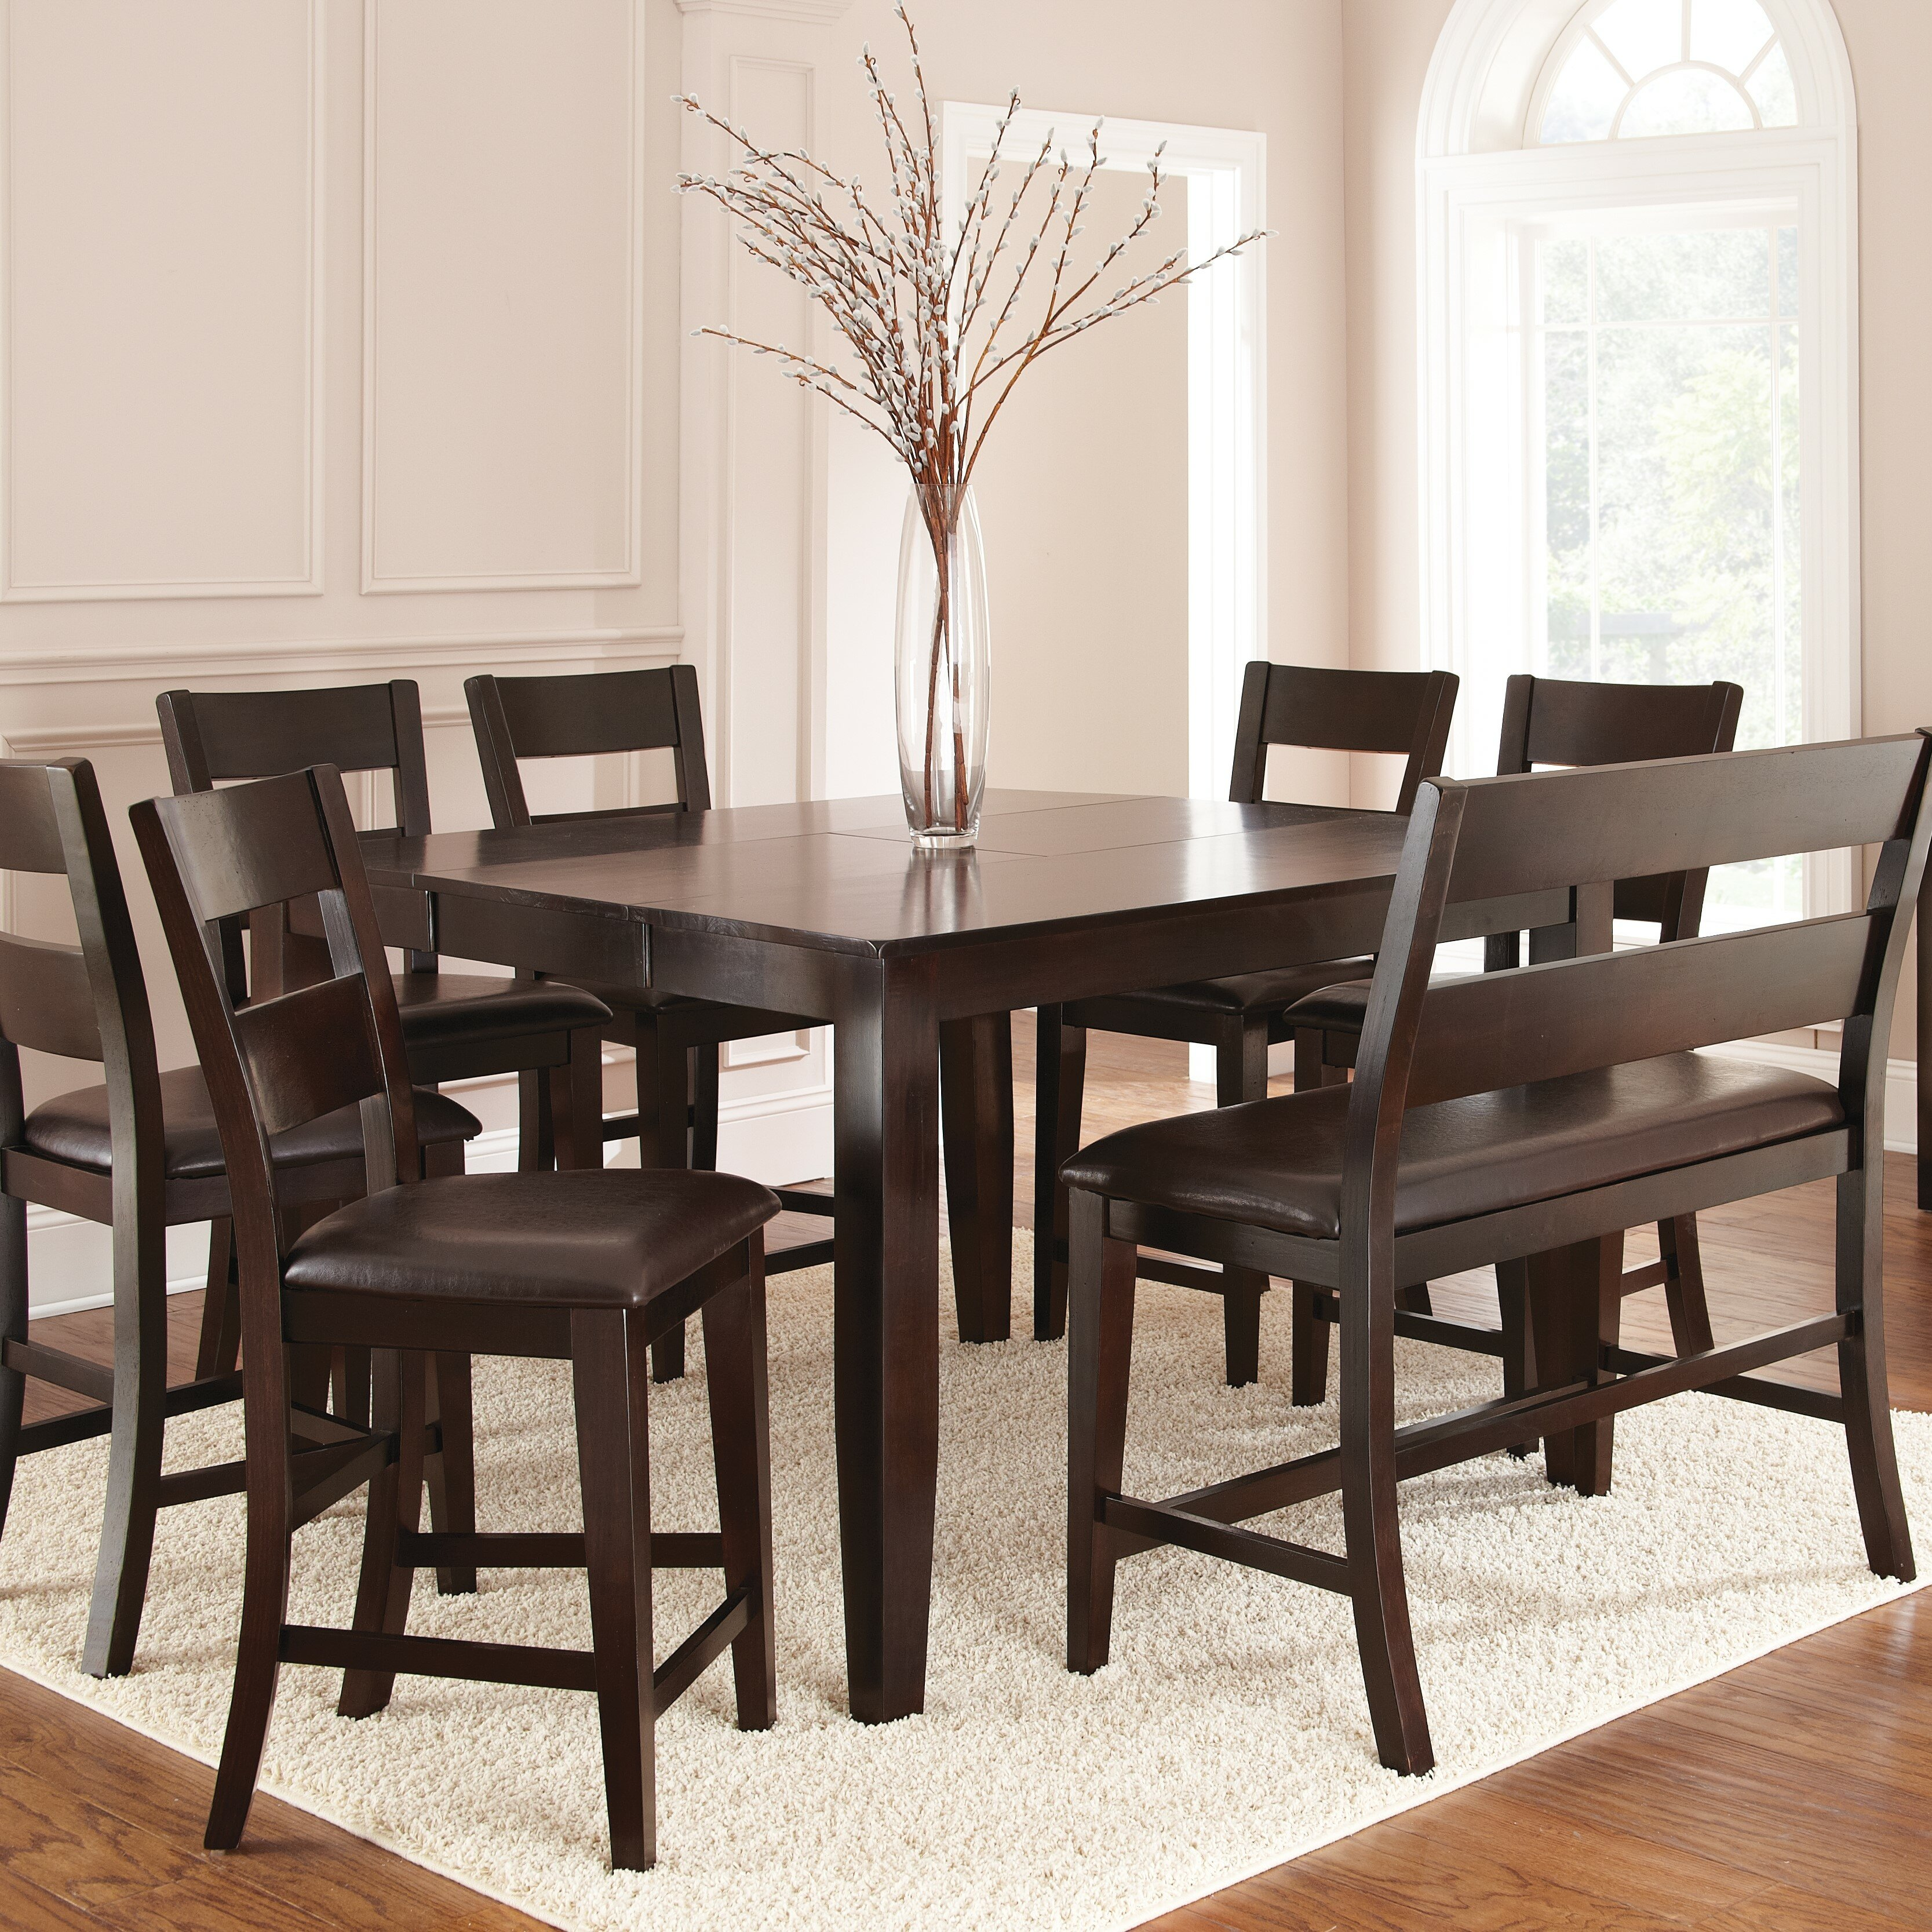 Ordinaire Wynwood 8 Piece Counter Height Dining Set